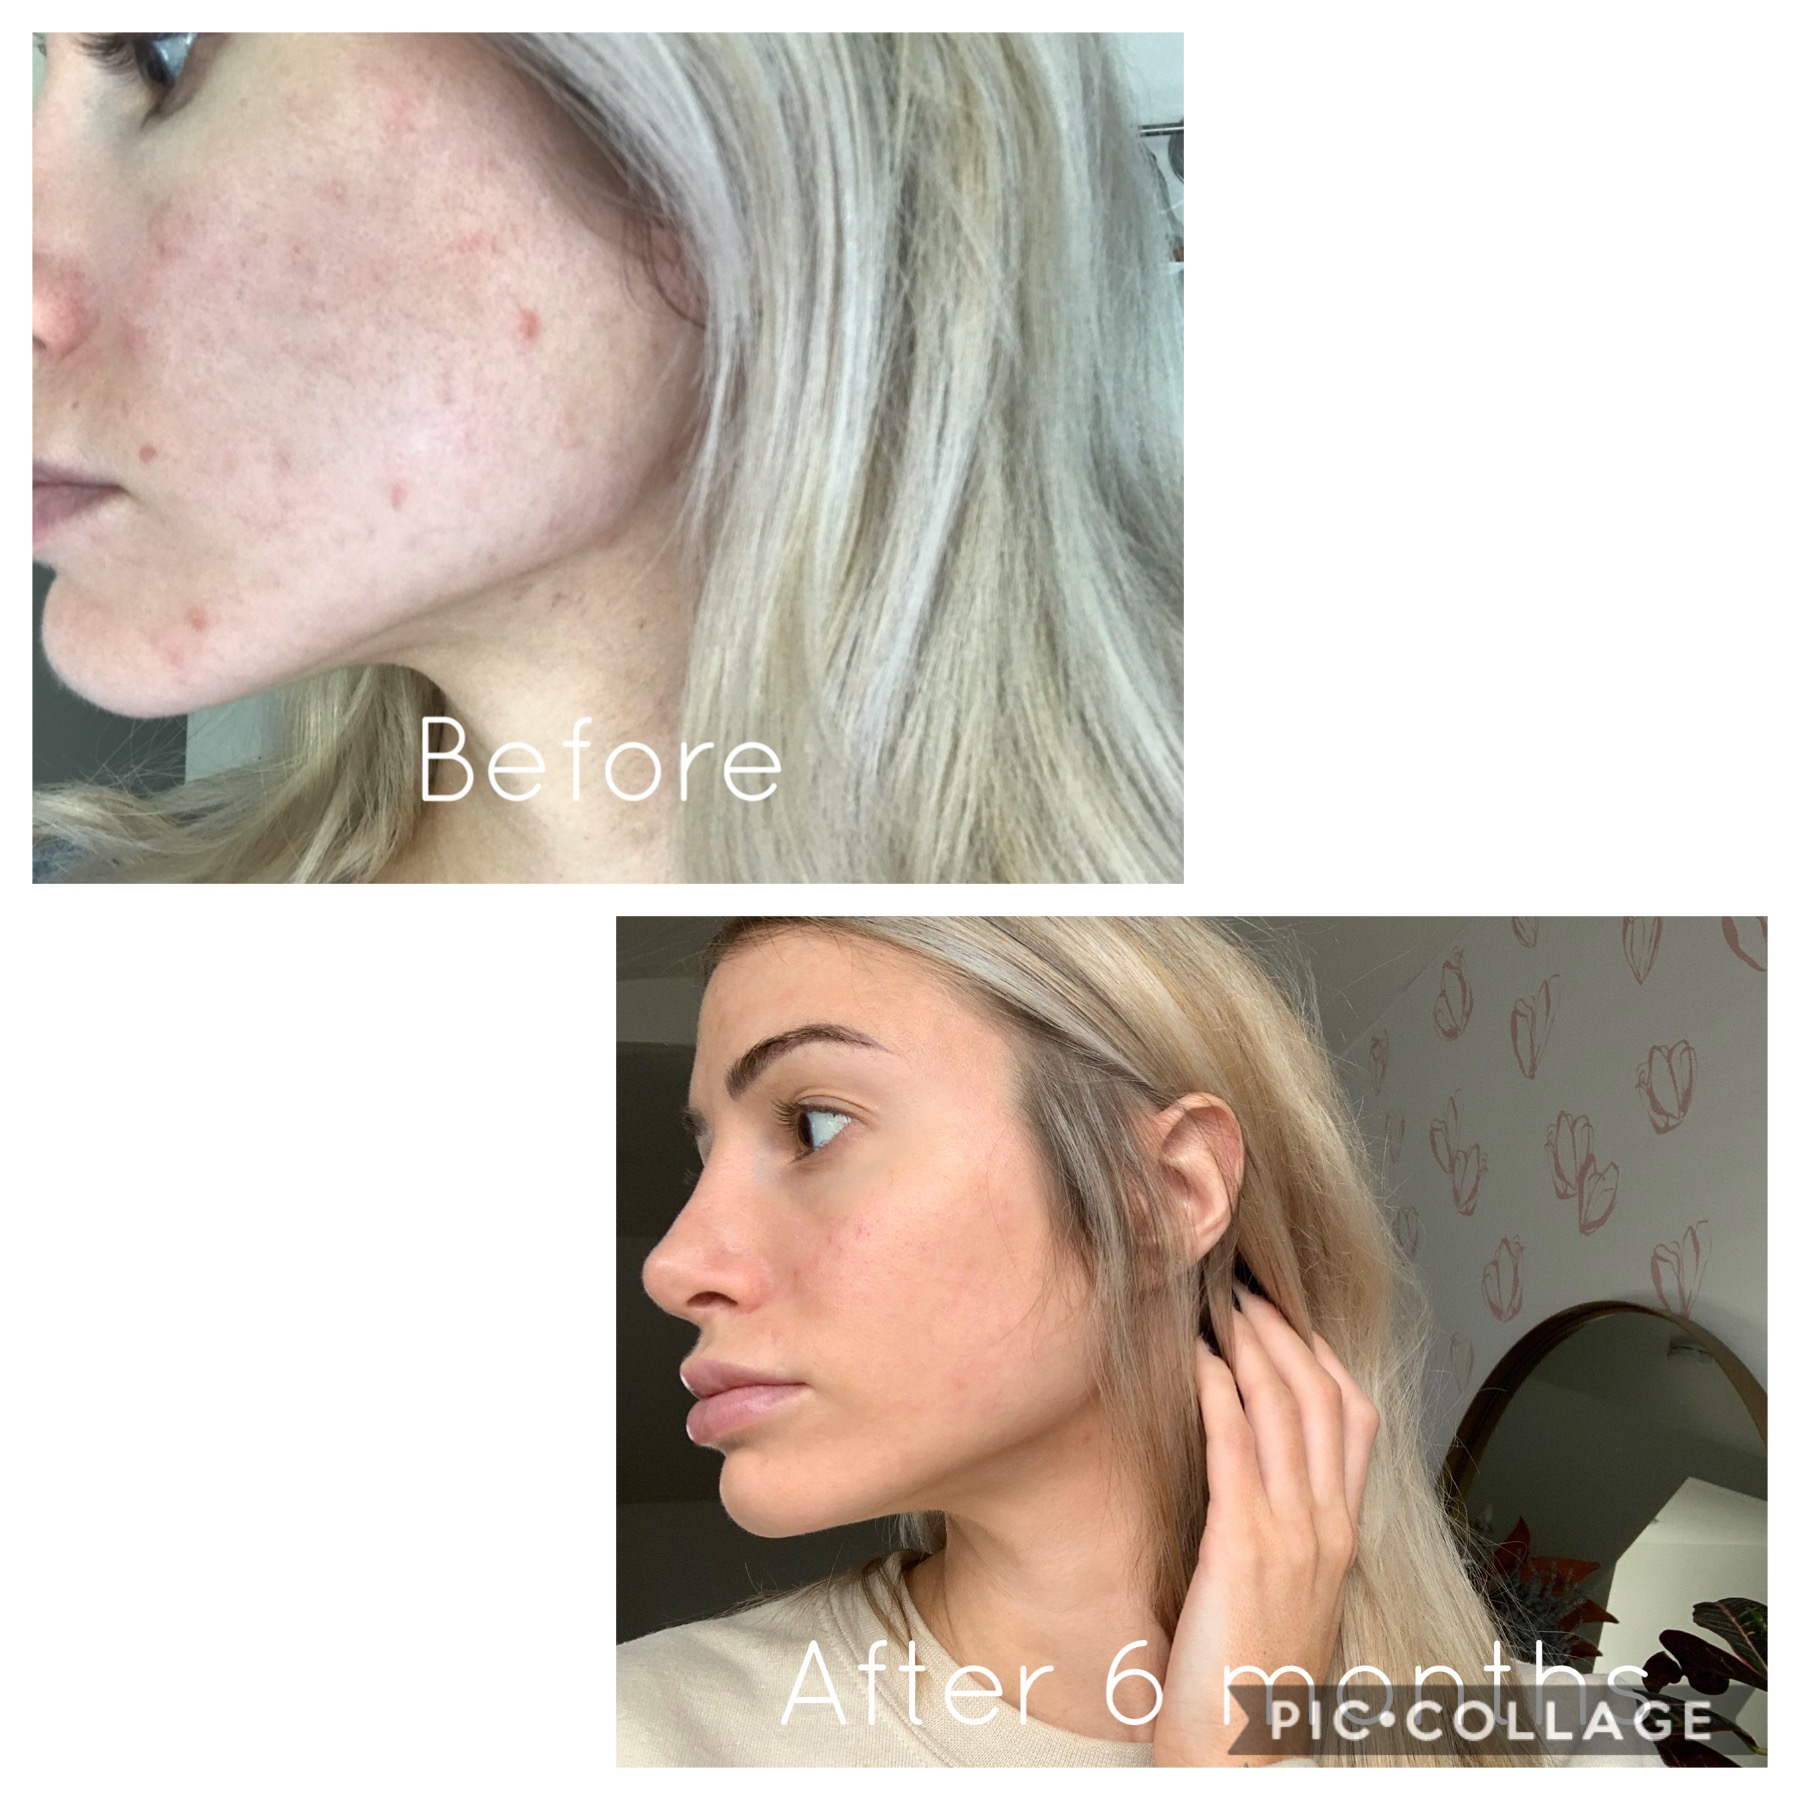 My everyday Skincare Routine with clean beauty products   Acne skincare regimen   Before and After acne skincare pictures